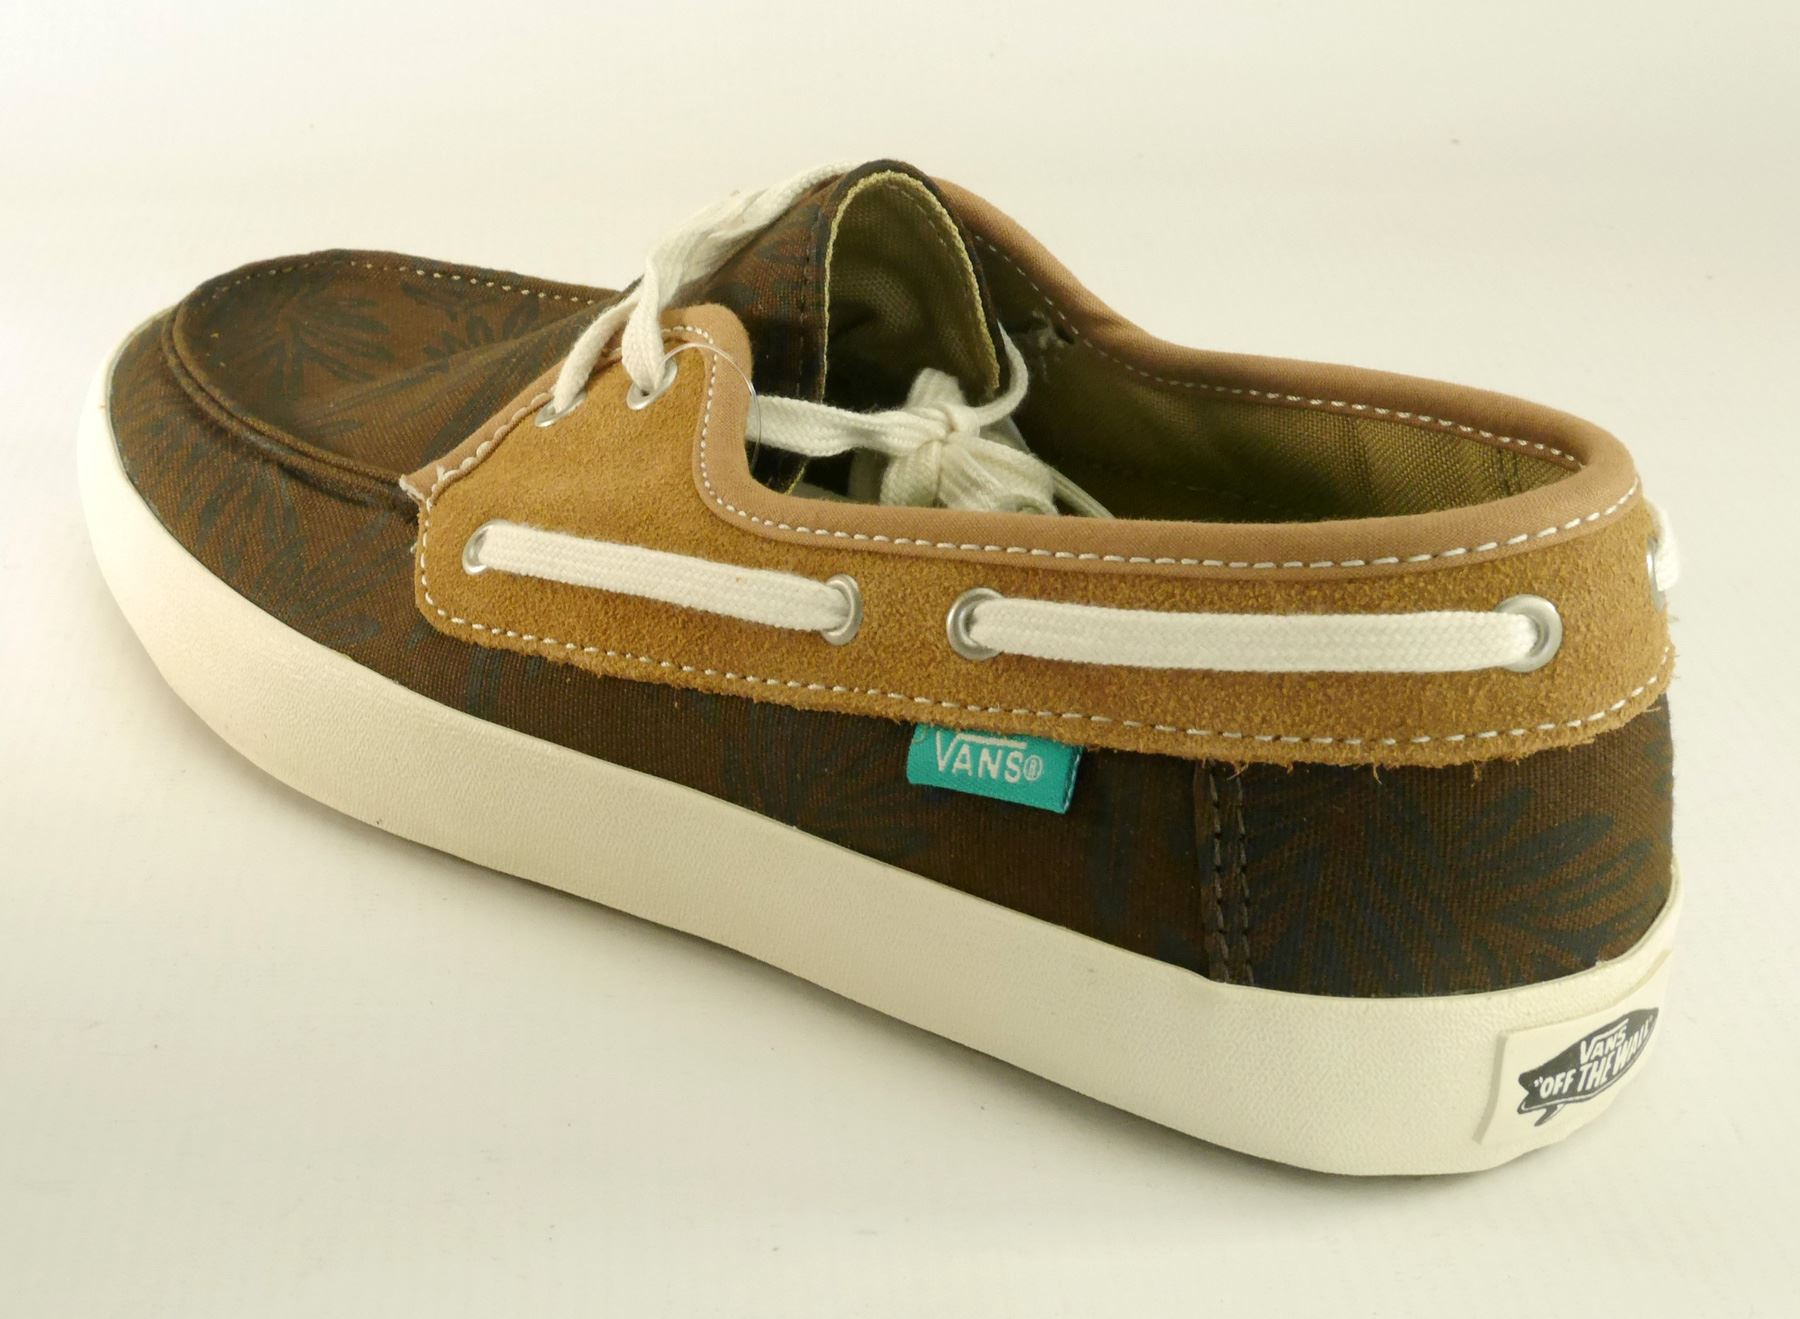 Details about Vans Authentic Chauffeur Mens Lace Up Canvas Suede Brown Pumps Boat Shoes